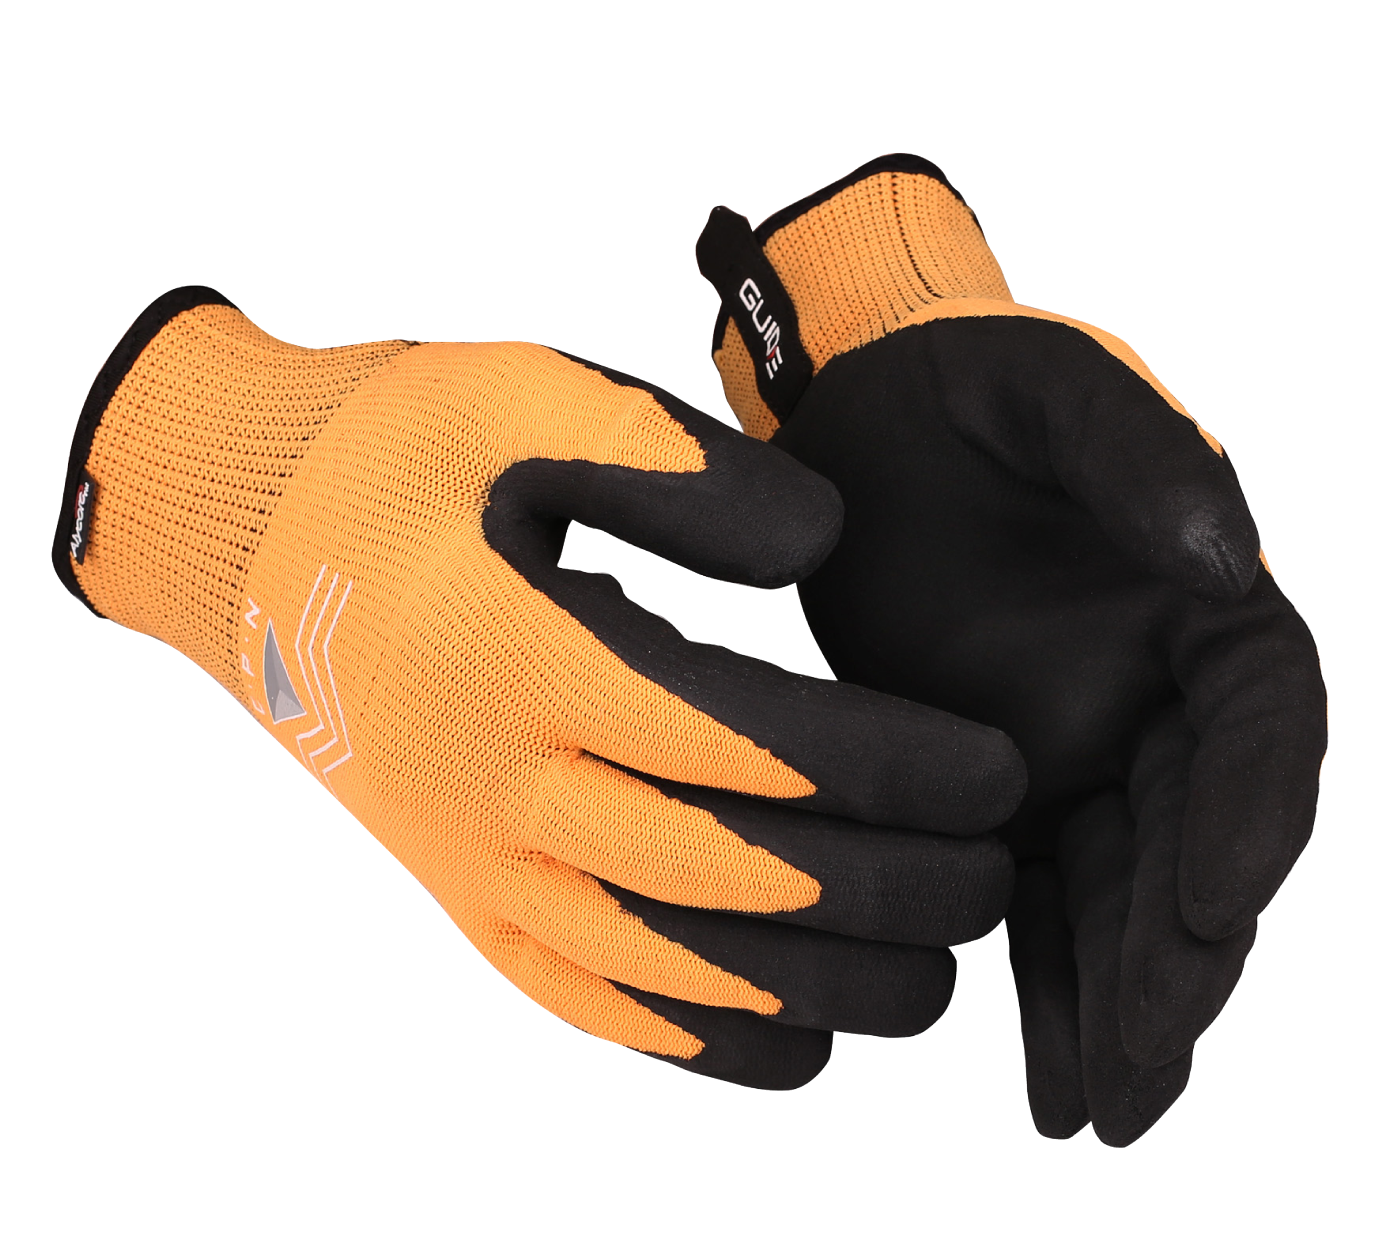 Needle Protection Glove GUIDE 6224 CPN